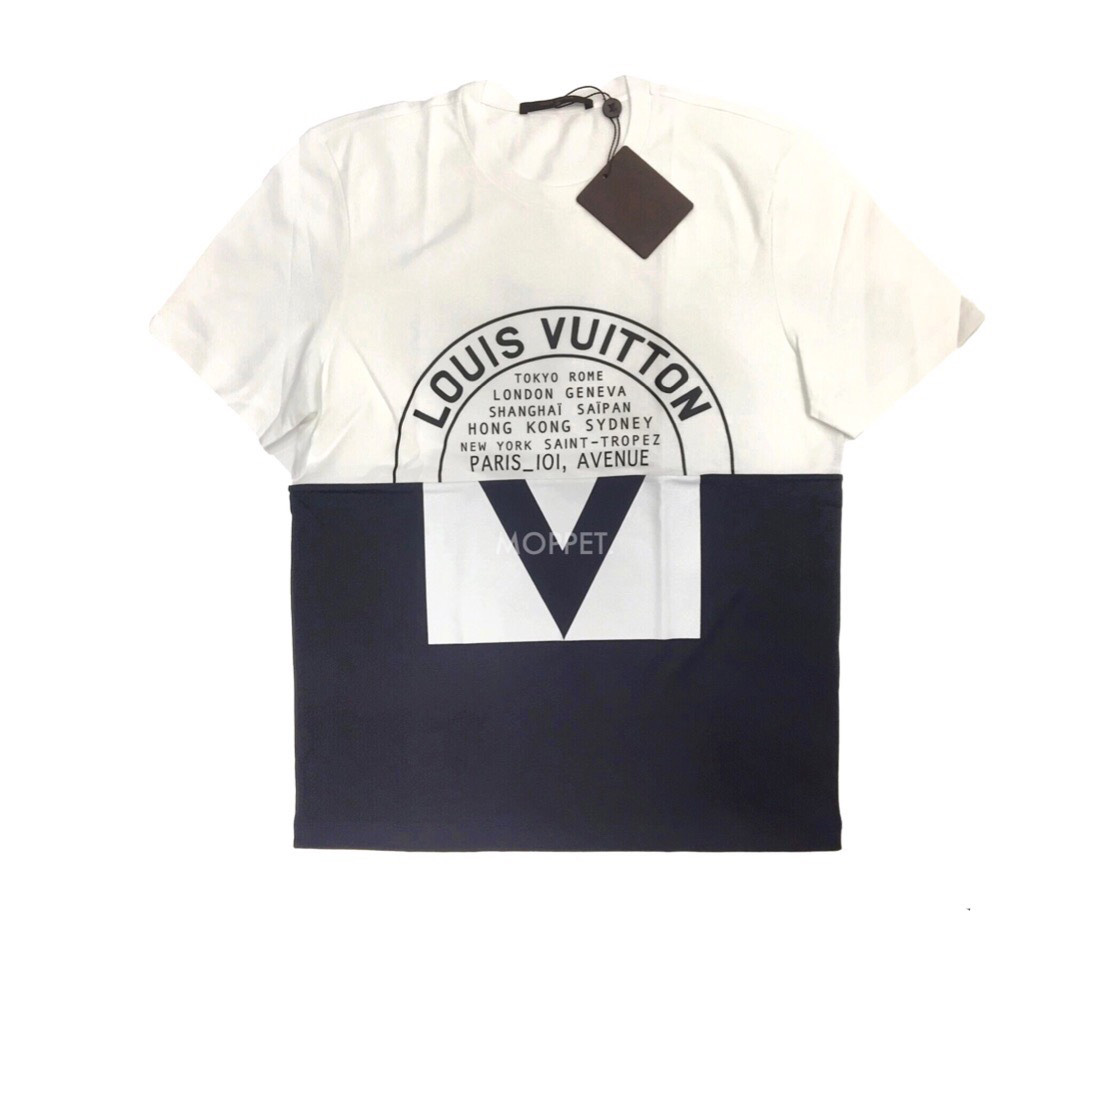 """New LV Printed T-Shirt Size M"""" in Black/White Cotton"""